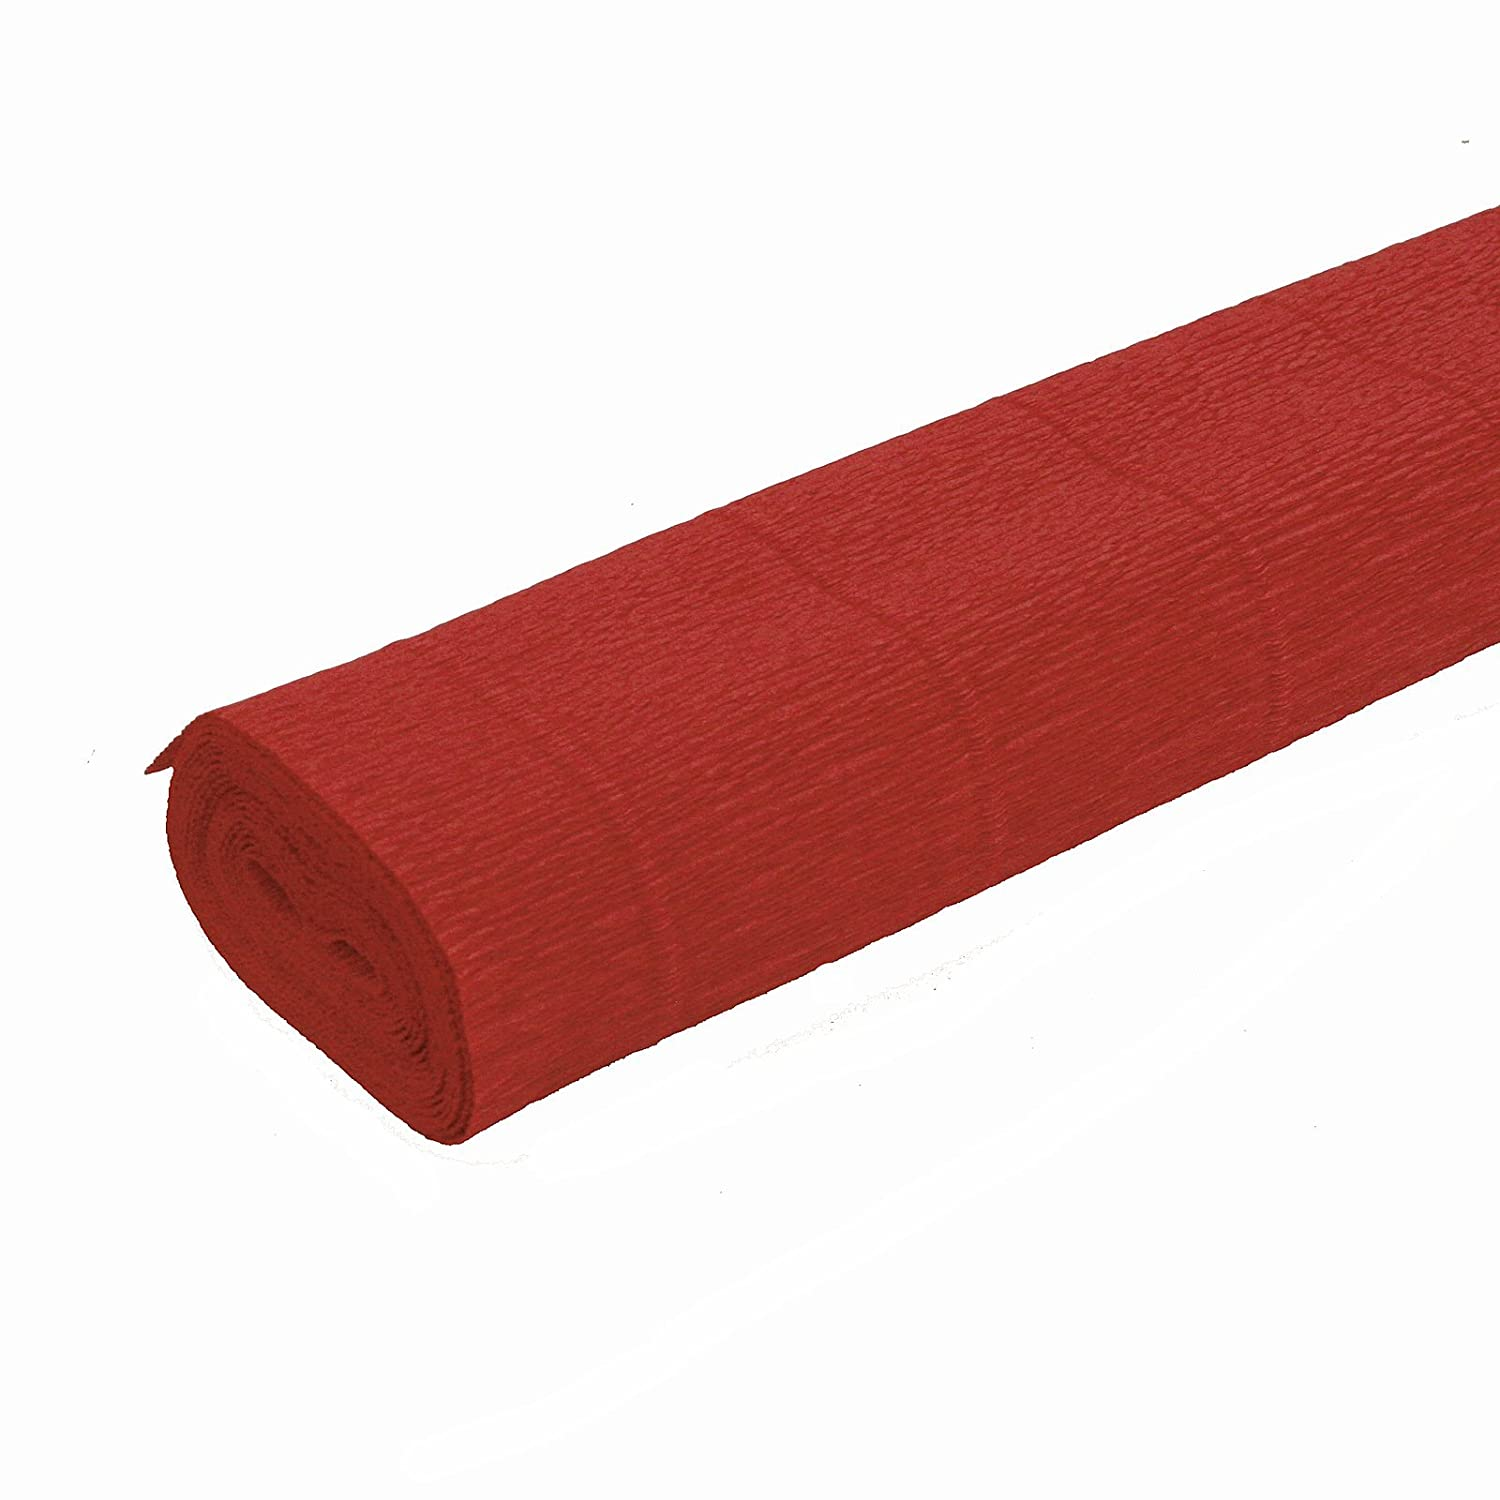 FloristryWarehouse Candyfloss Pink 549 Crepe paper roll 20 inches wide x 8ft long Top quality Italian paper craft